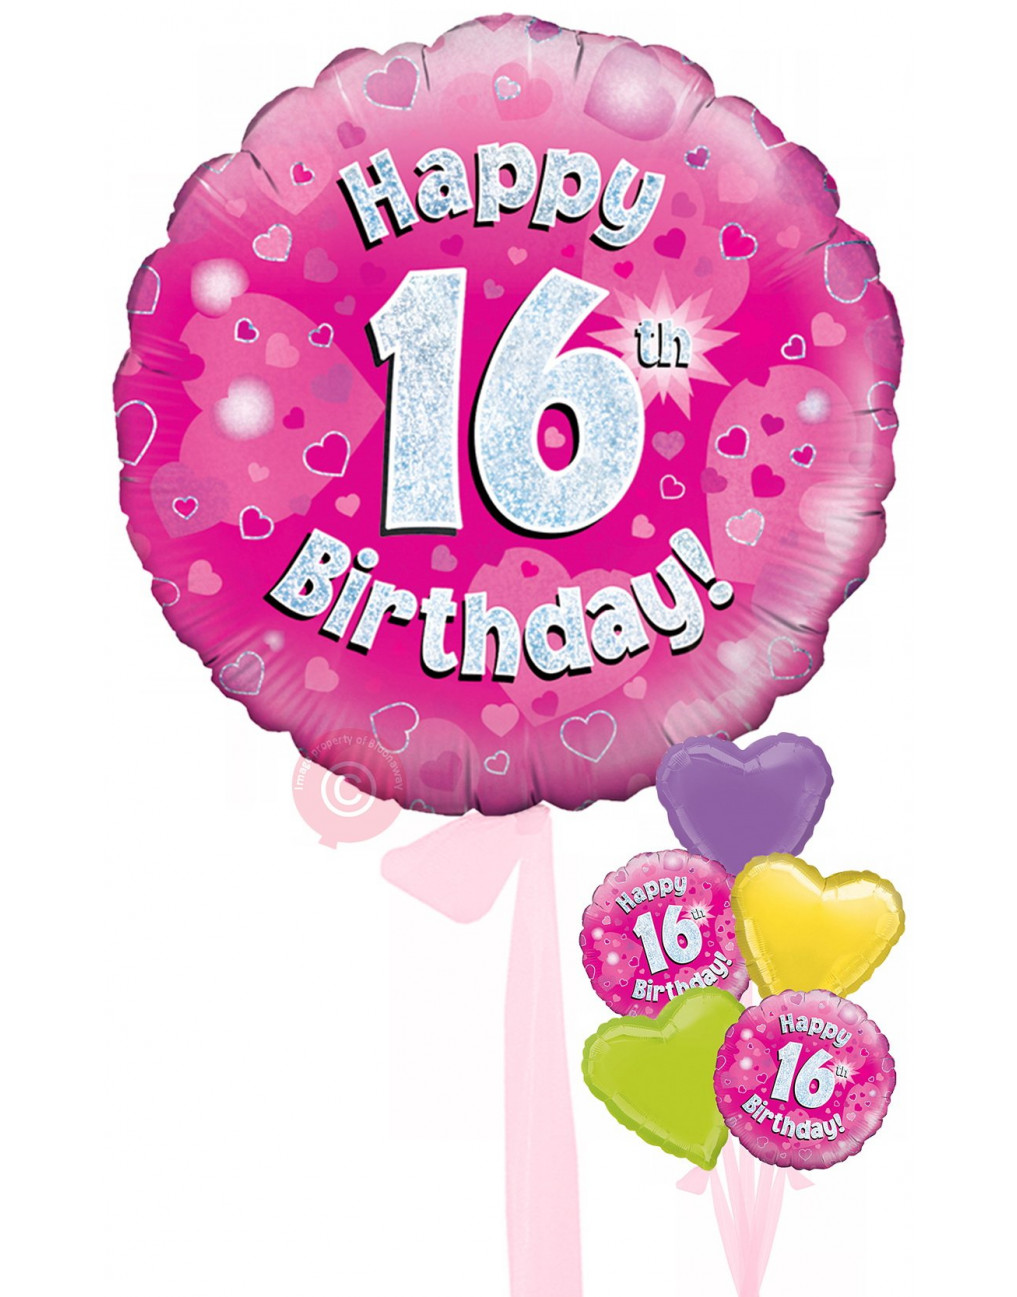 Num 16 Happy 16th Birthday Pink Holographic Balloons